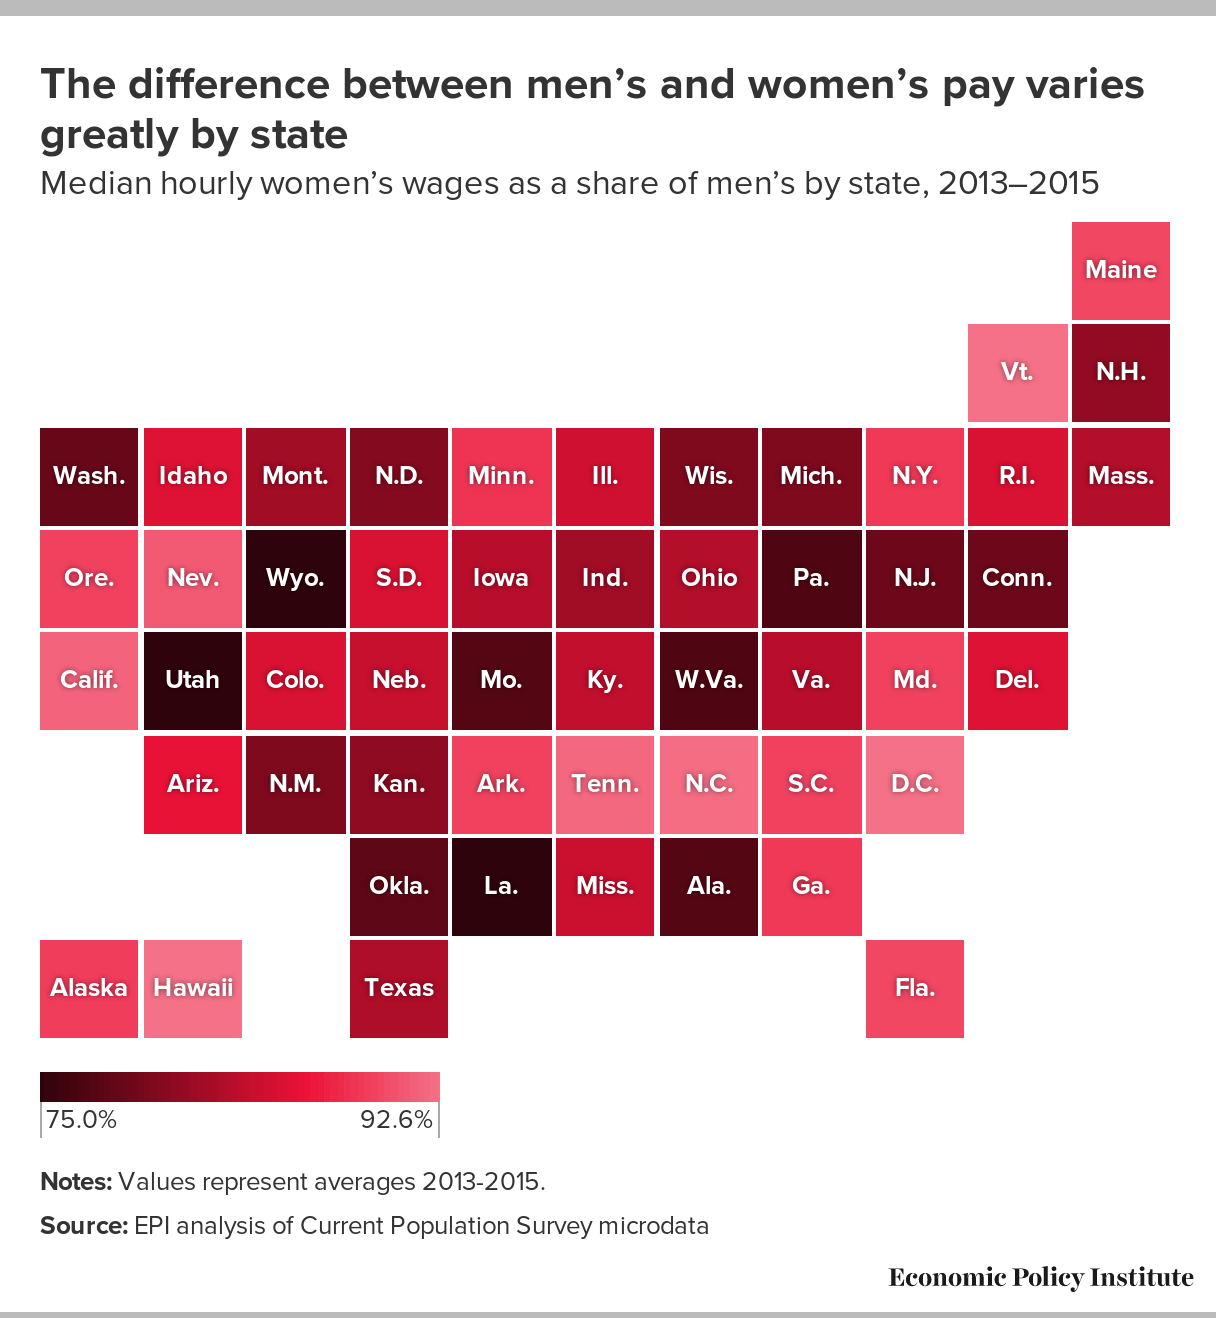 The gender pay gap, by state